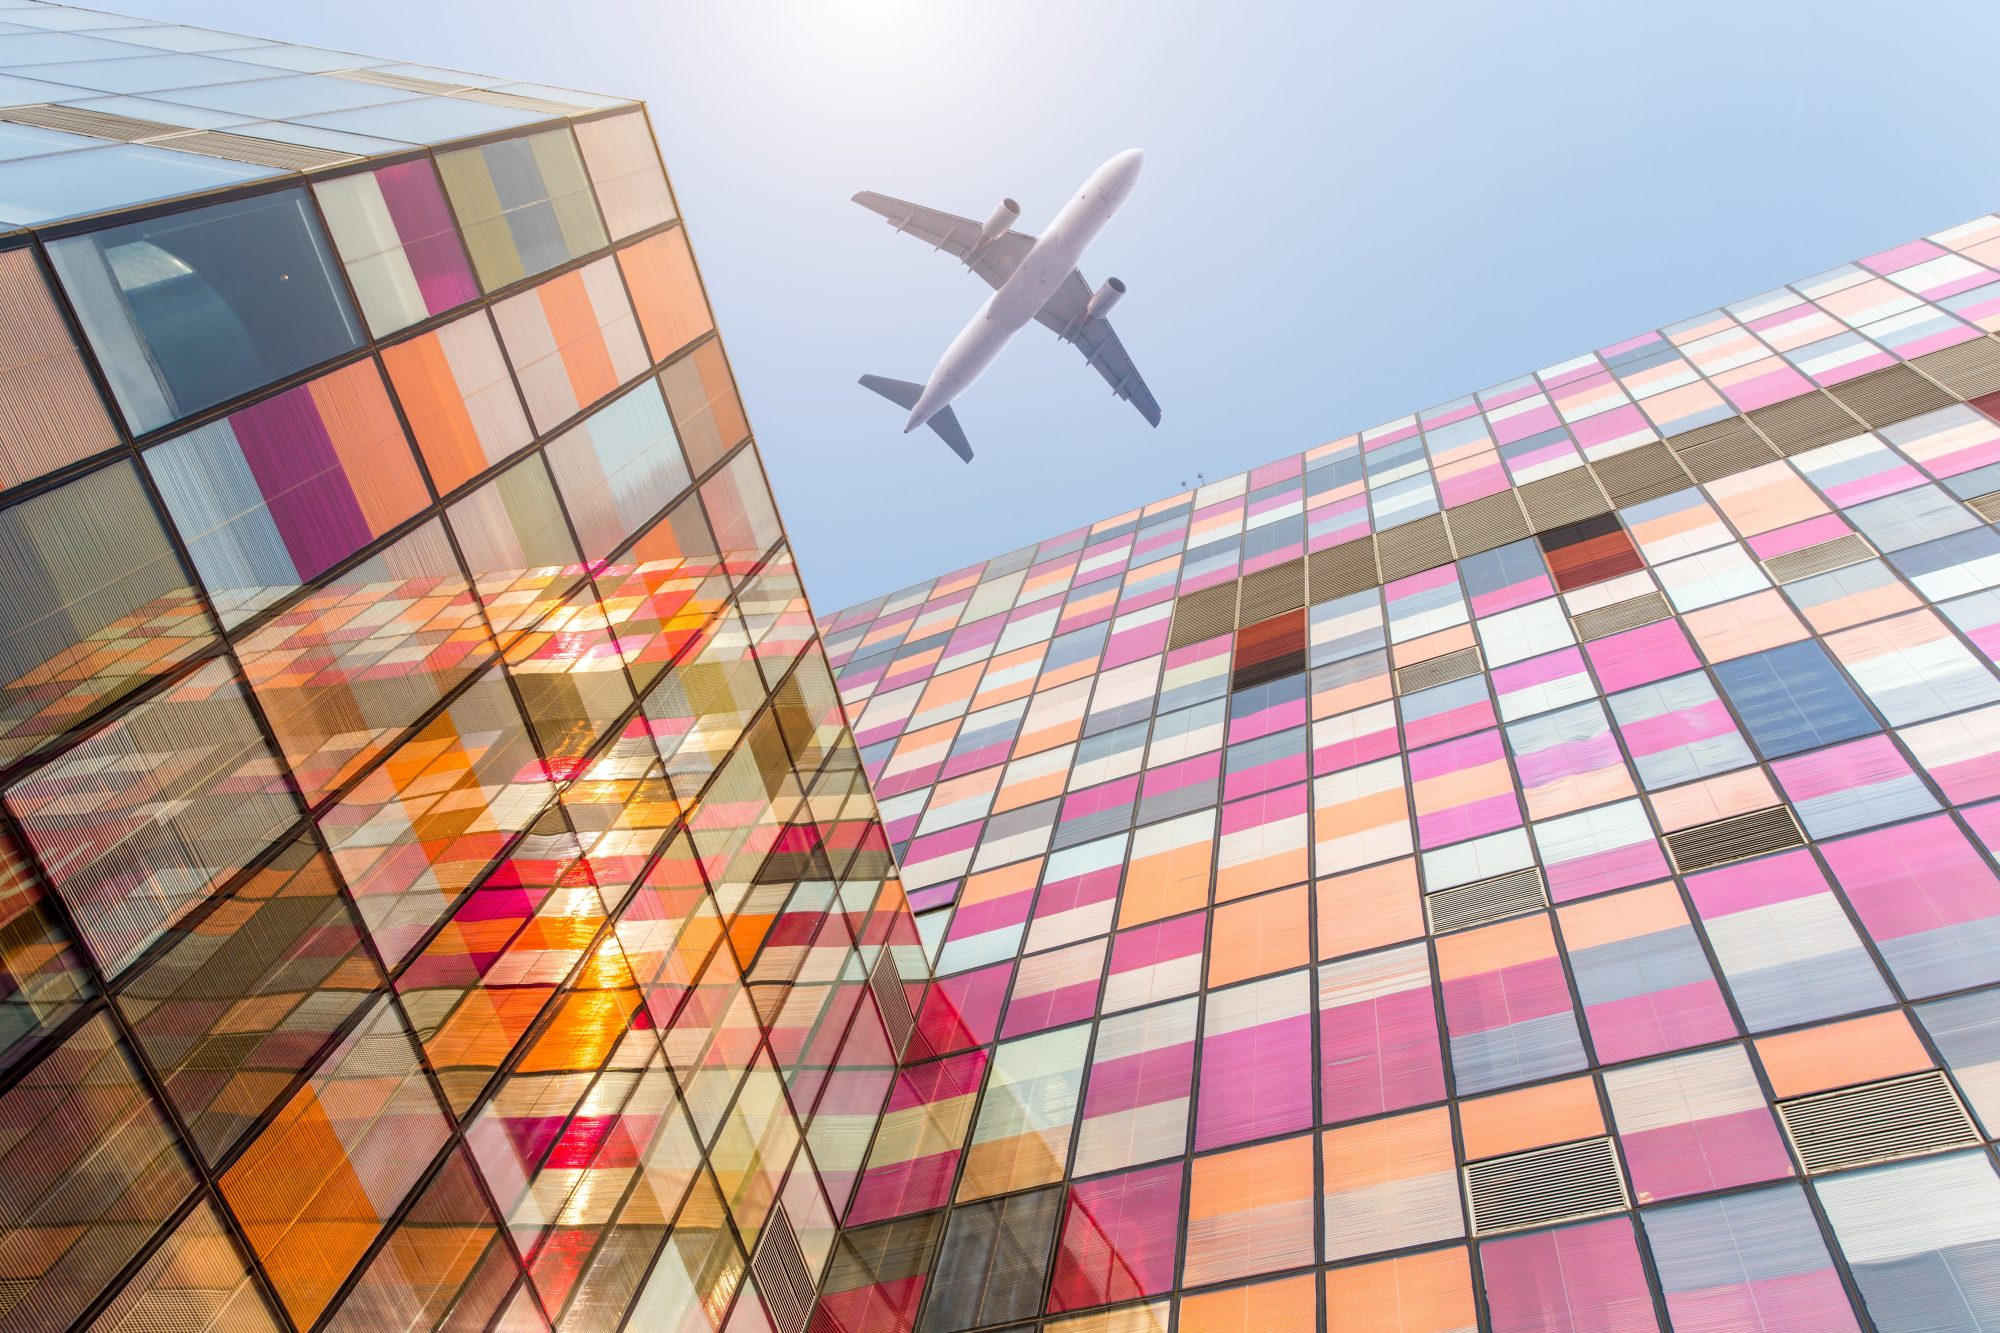 airplane flying over a colorful glass building